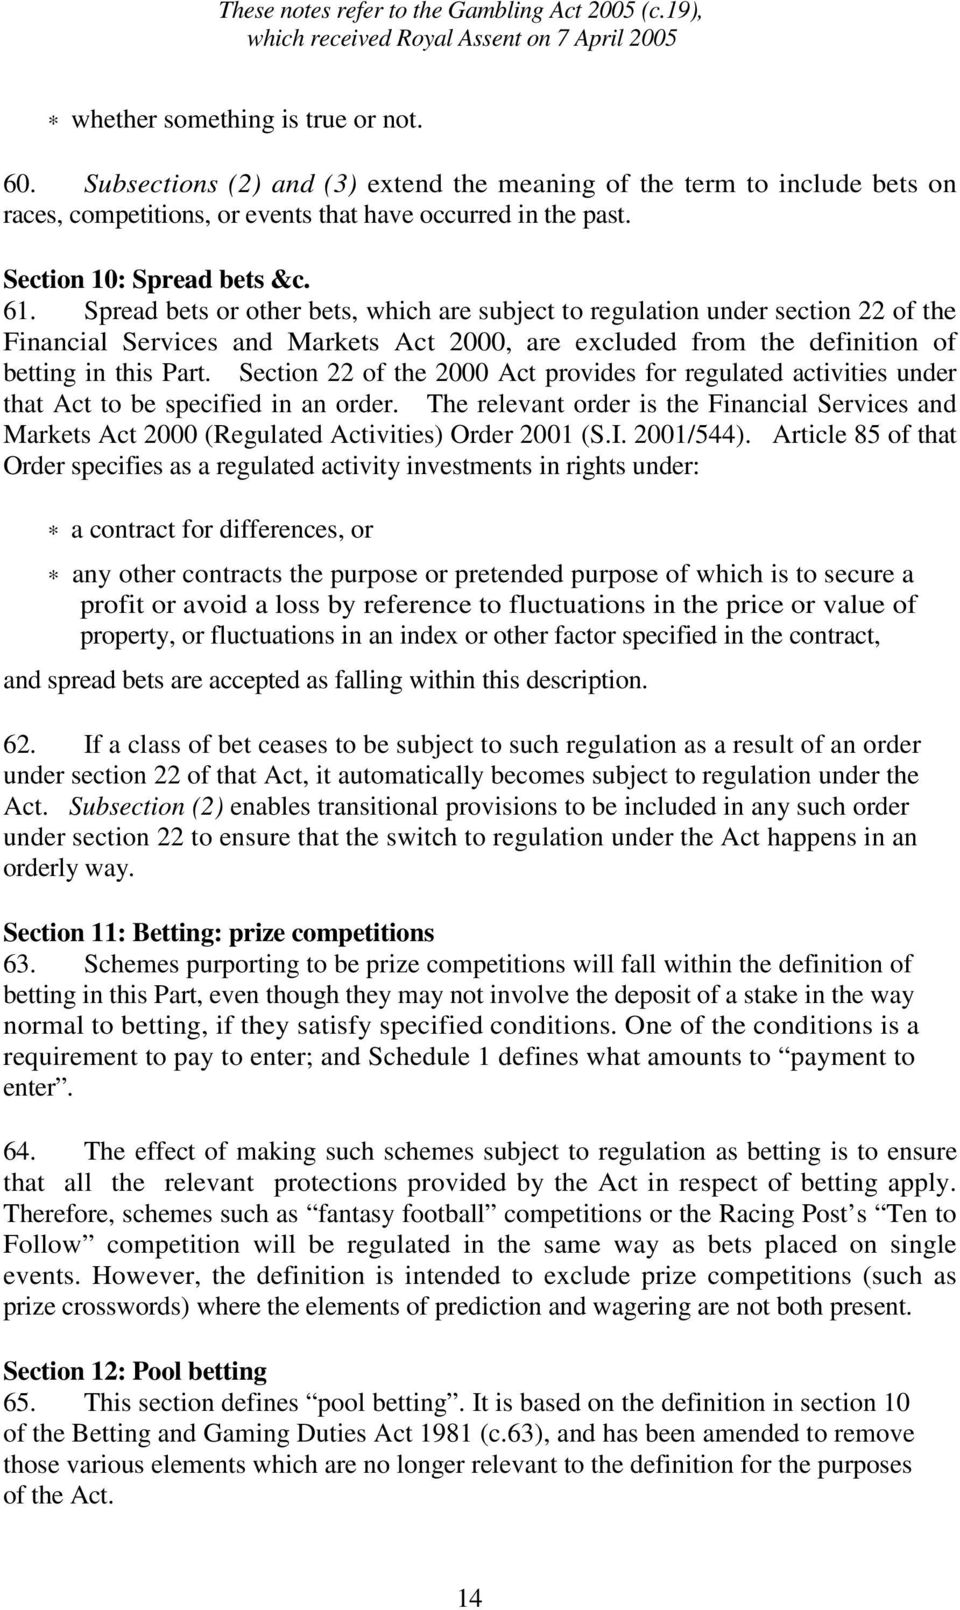 Spread bets or other bets, which are subject to regulation under section 22 of the Financial Services and Markets Act 2000, are excluded from the definition of betting in this Part.